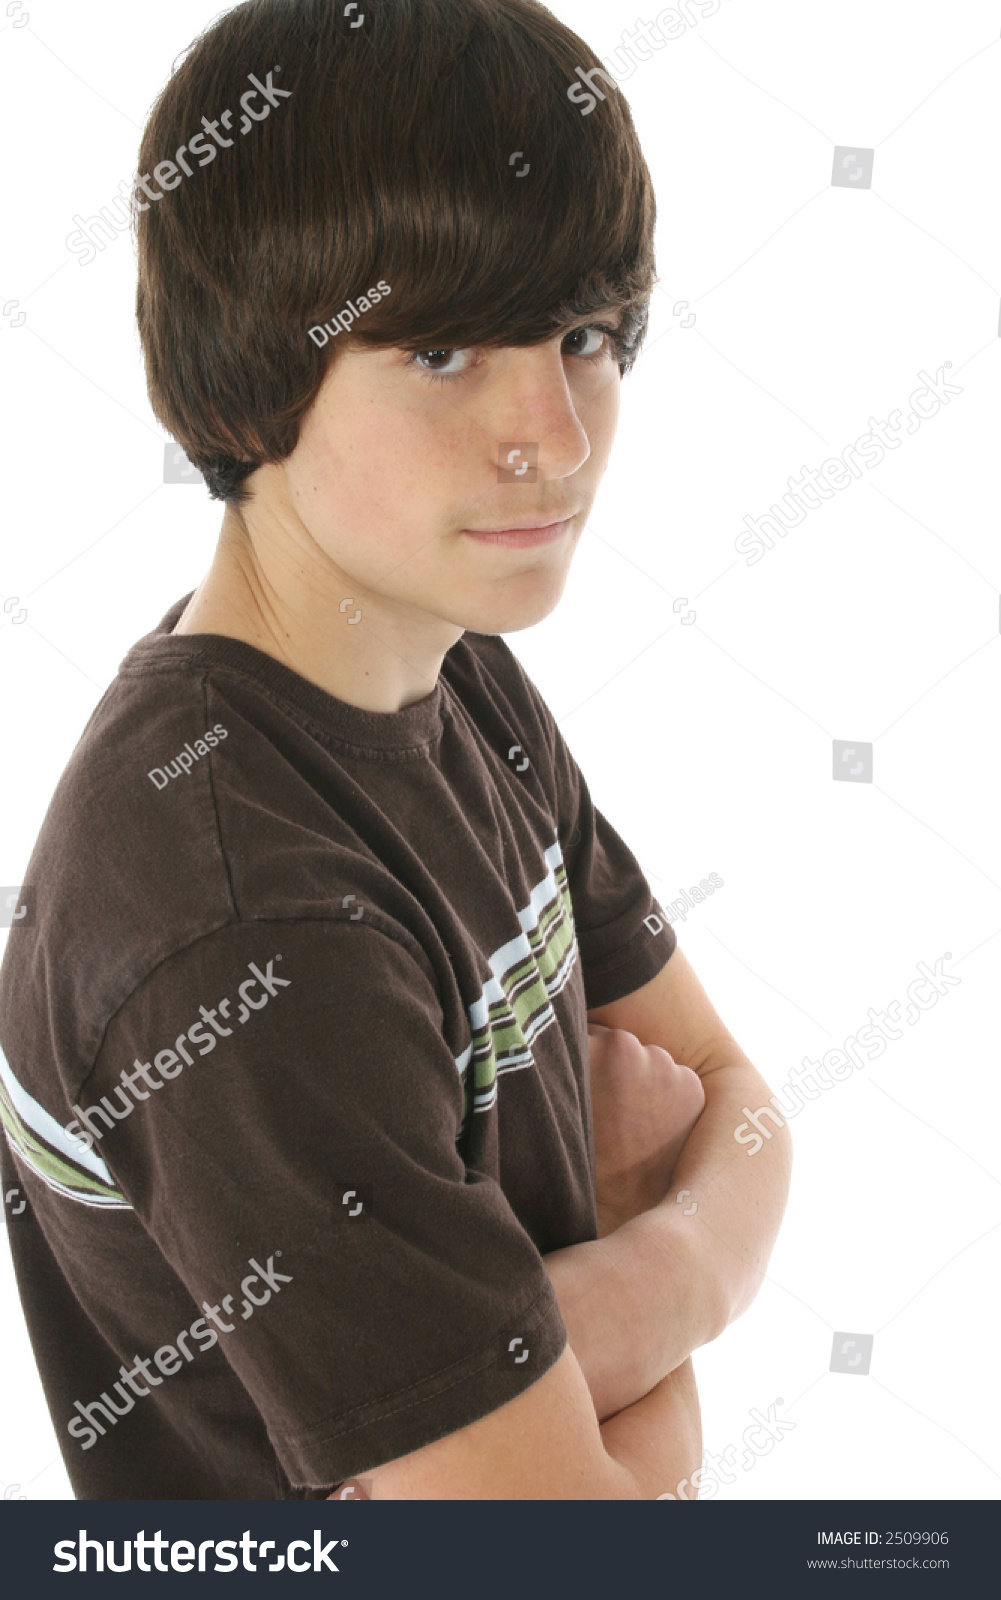 Cute 13 Year Old Boy With Arms Crossed. White Background